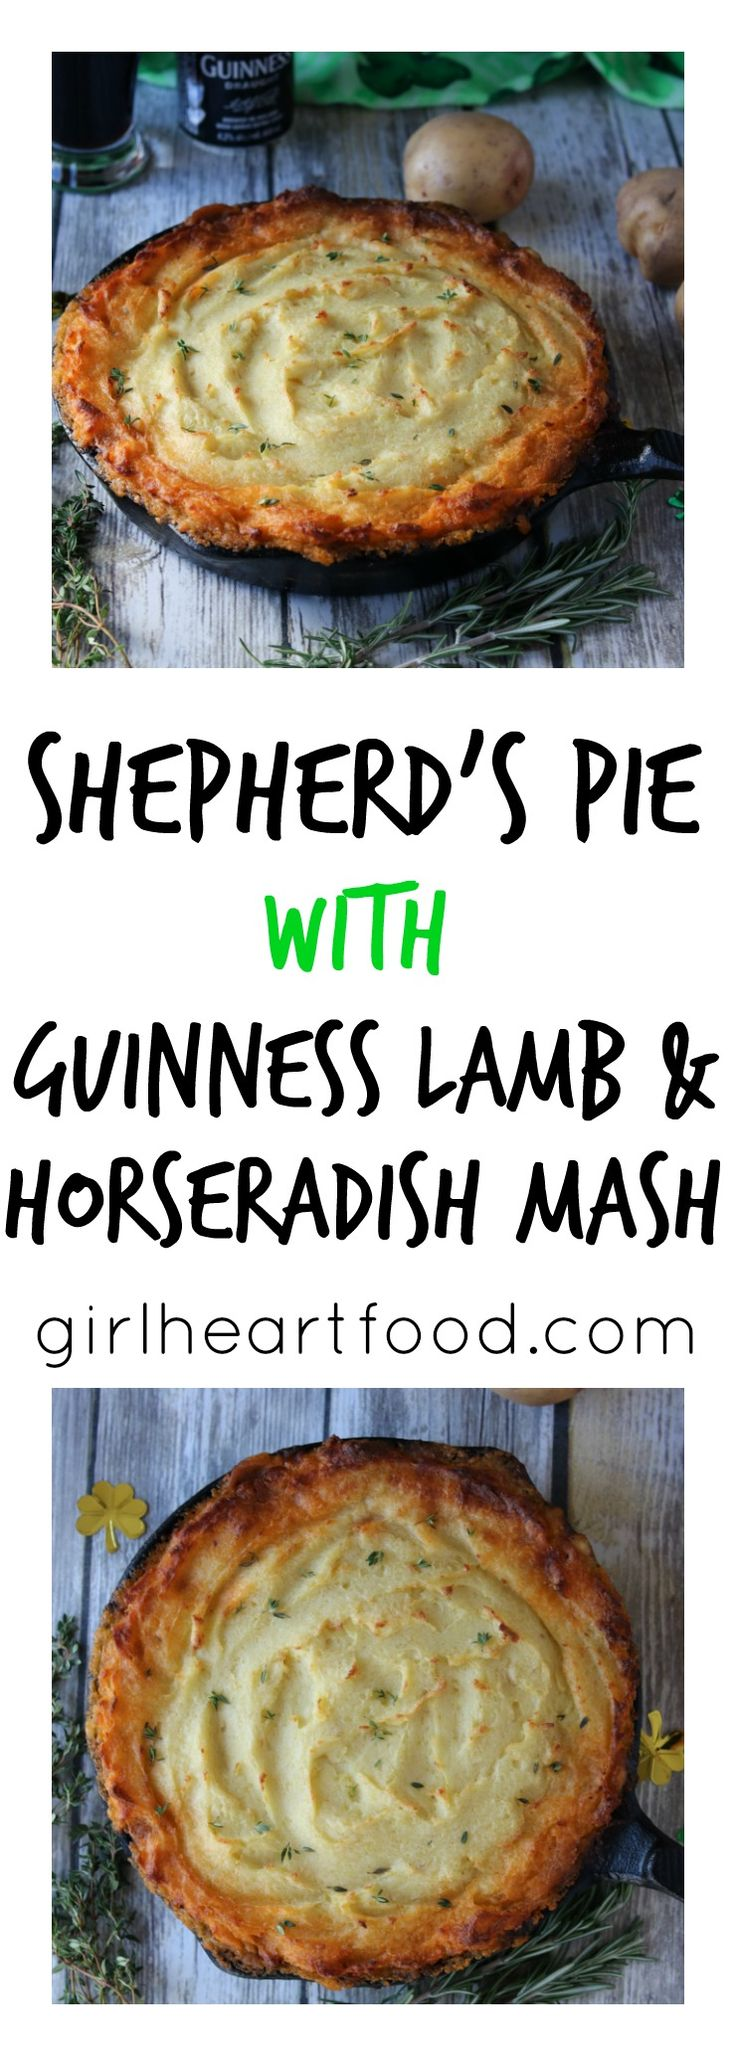 Shepherd's Pie with Guinness Lamb and Horseradish Mash Ground lamb is flavoured with Guinness beer and herbs like rosemary and thyme and topped with creamy, dreamy horseradish mashed potatoes to make this super comforting, stick-to-ya-ribs Shepherd's Pie. Can't get much better than that! Just don't forget to save some Guinness to drink alongside! Hello, you …